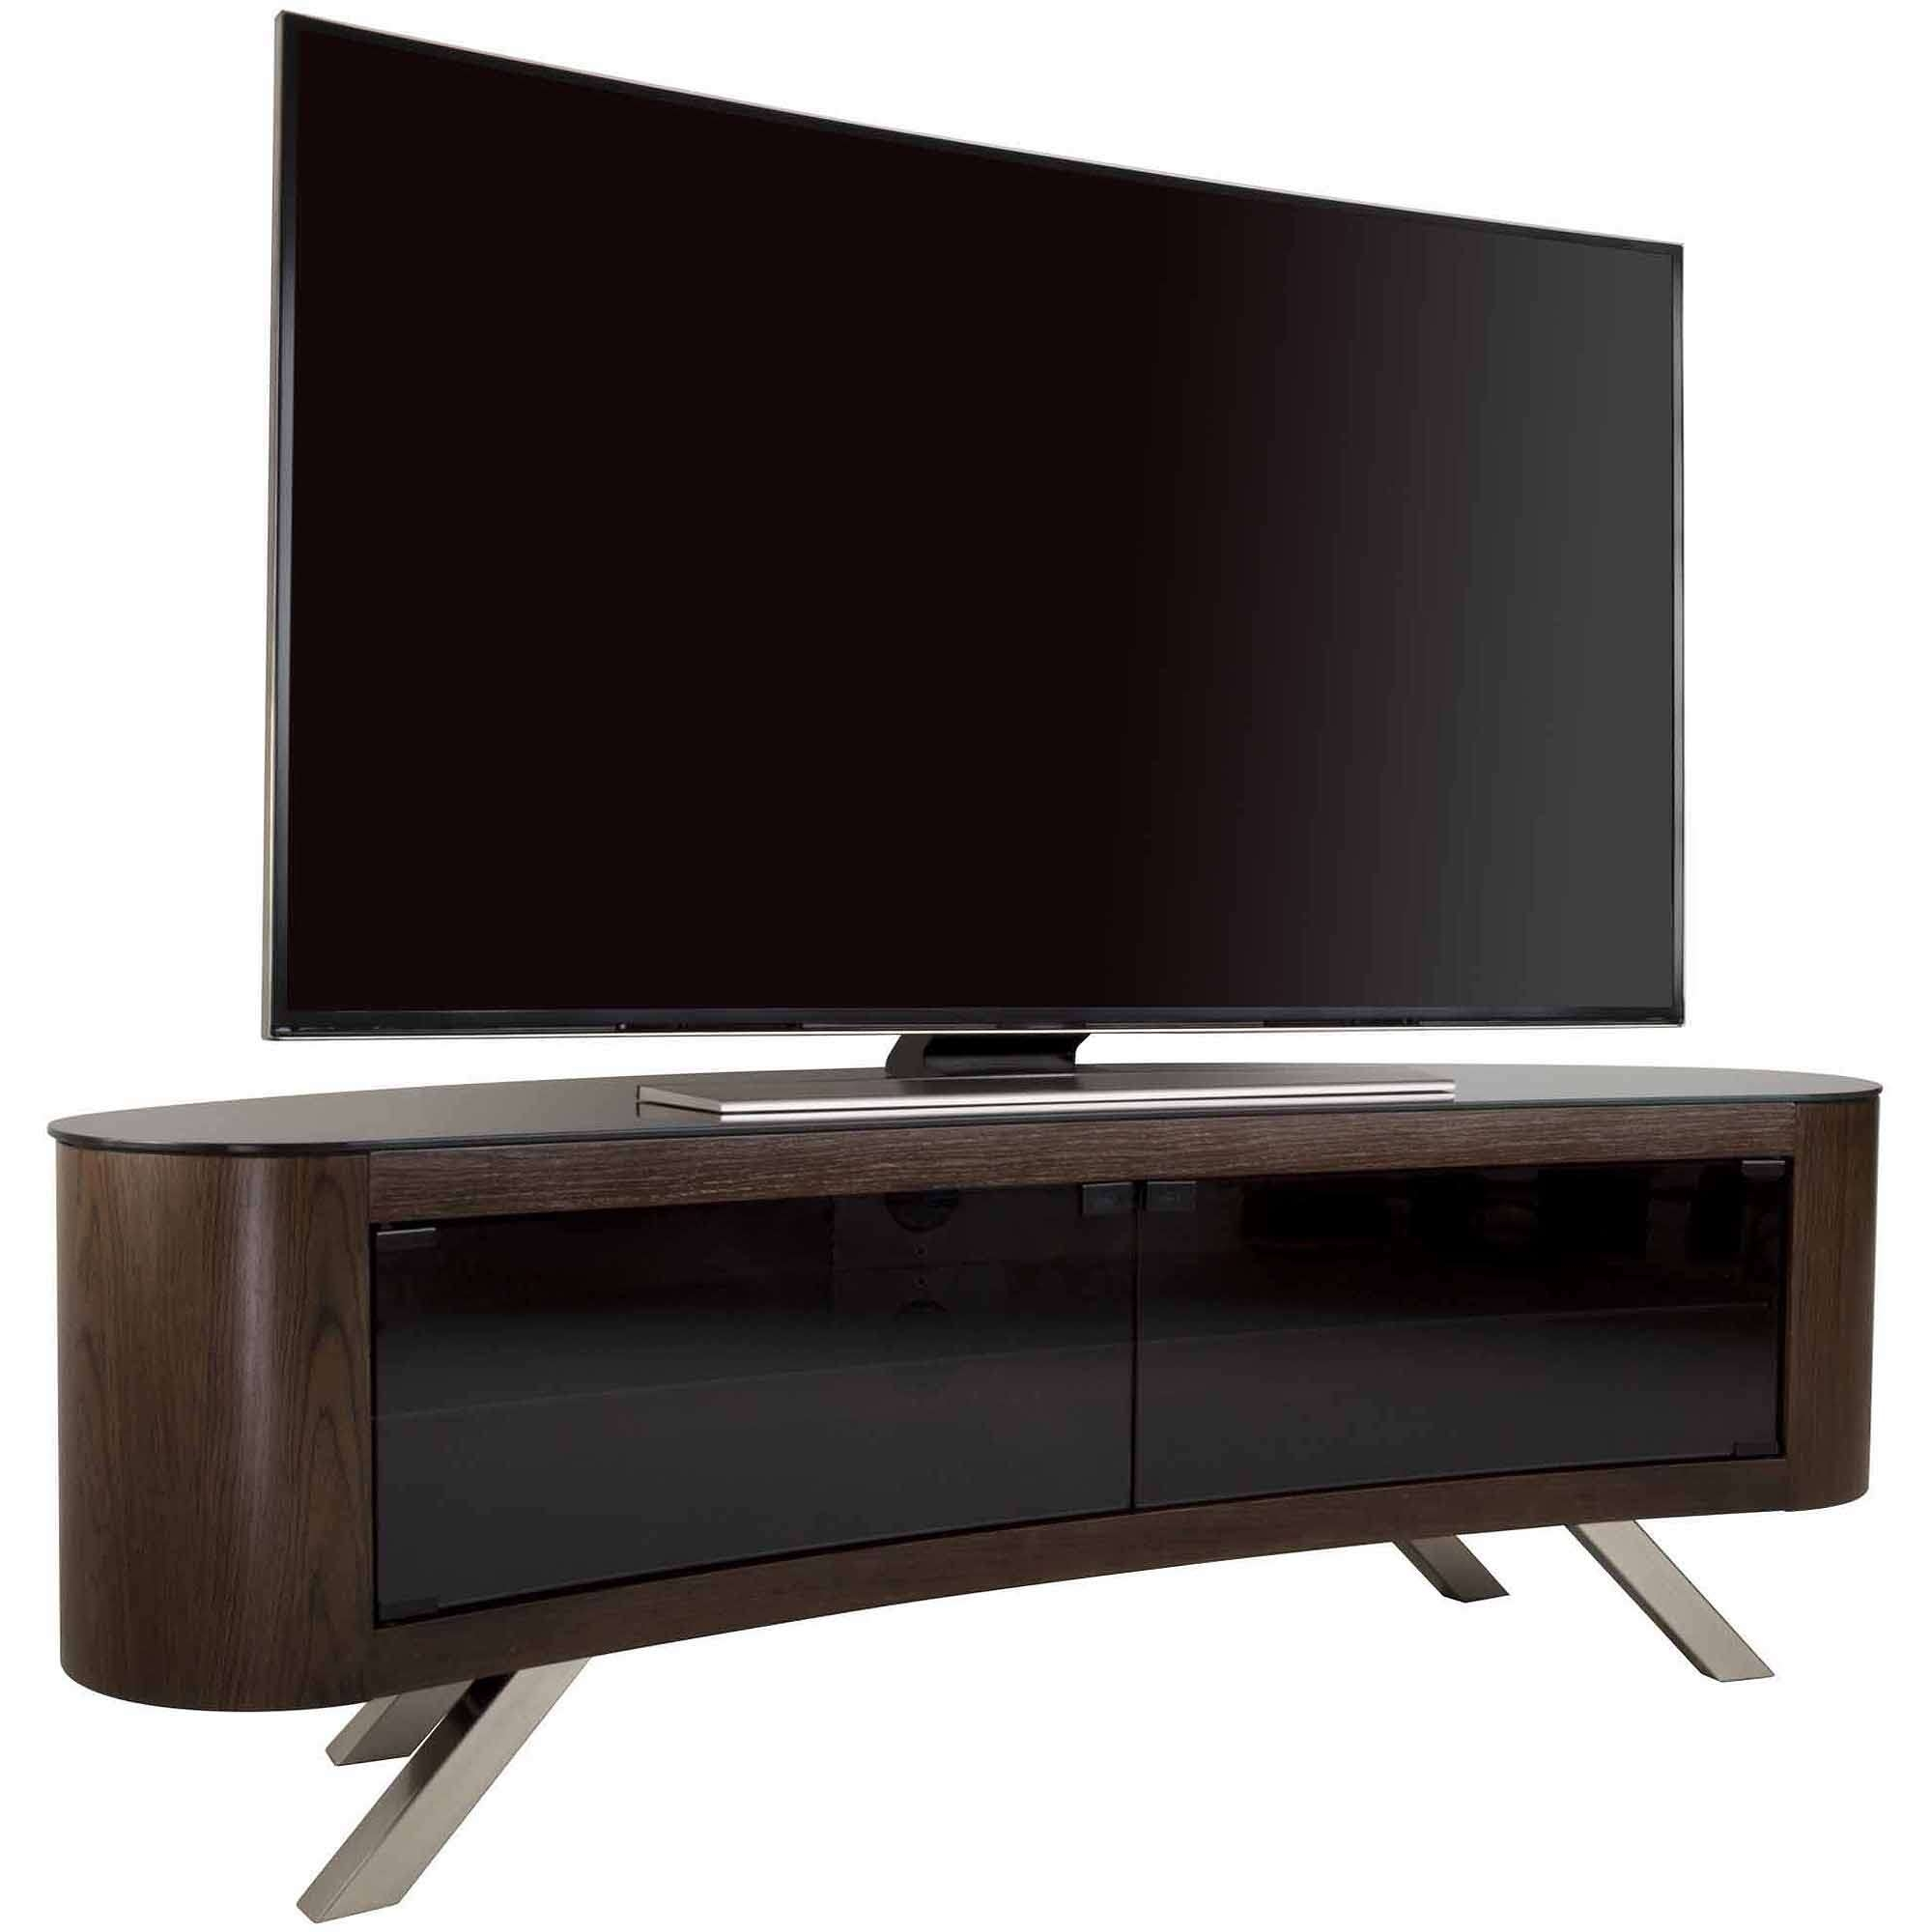 Tv Stands For Inch Avf Bay Curved Stand Tvs Up To 0E2B4Cfbe0E8 1 Regarding Tv Stands For 70 Inch Tvs (View 14 of 15)